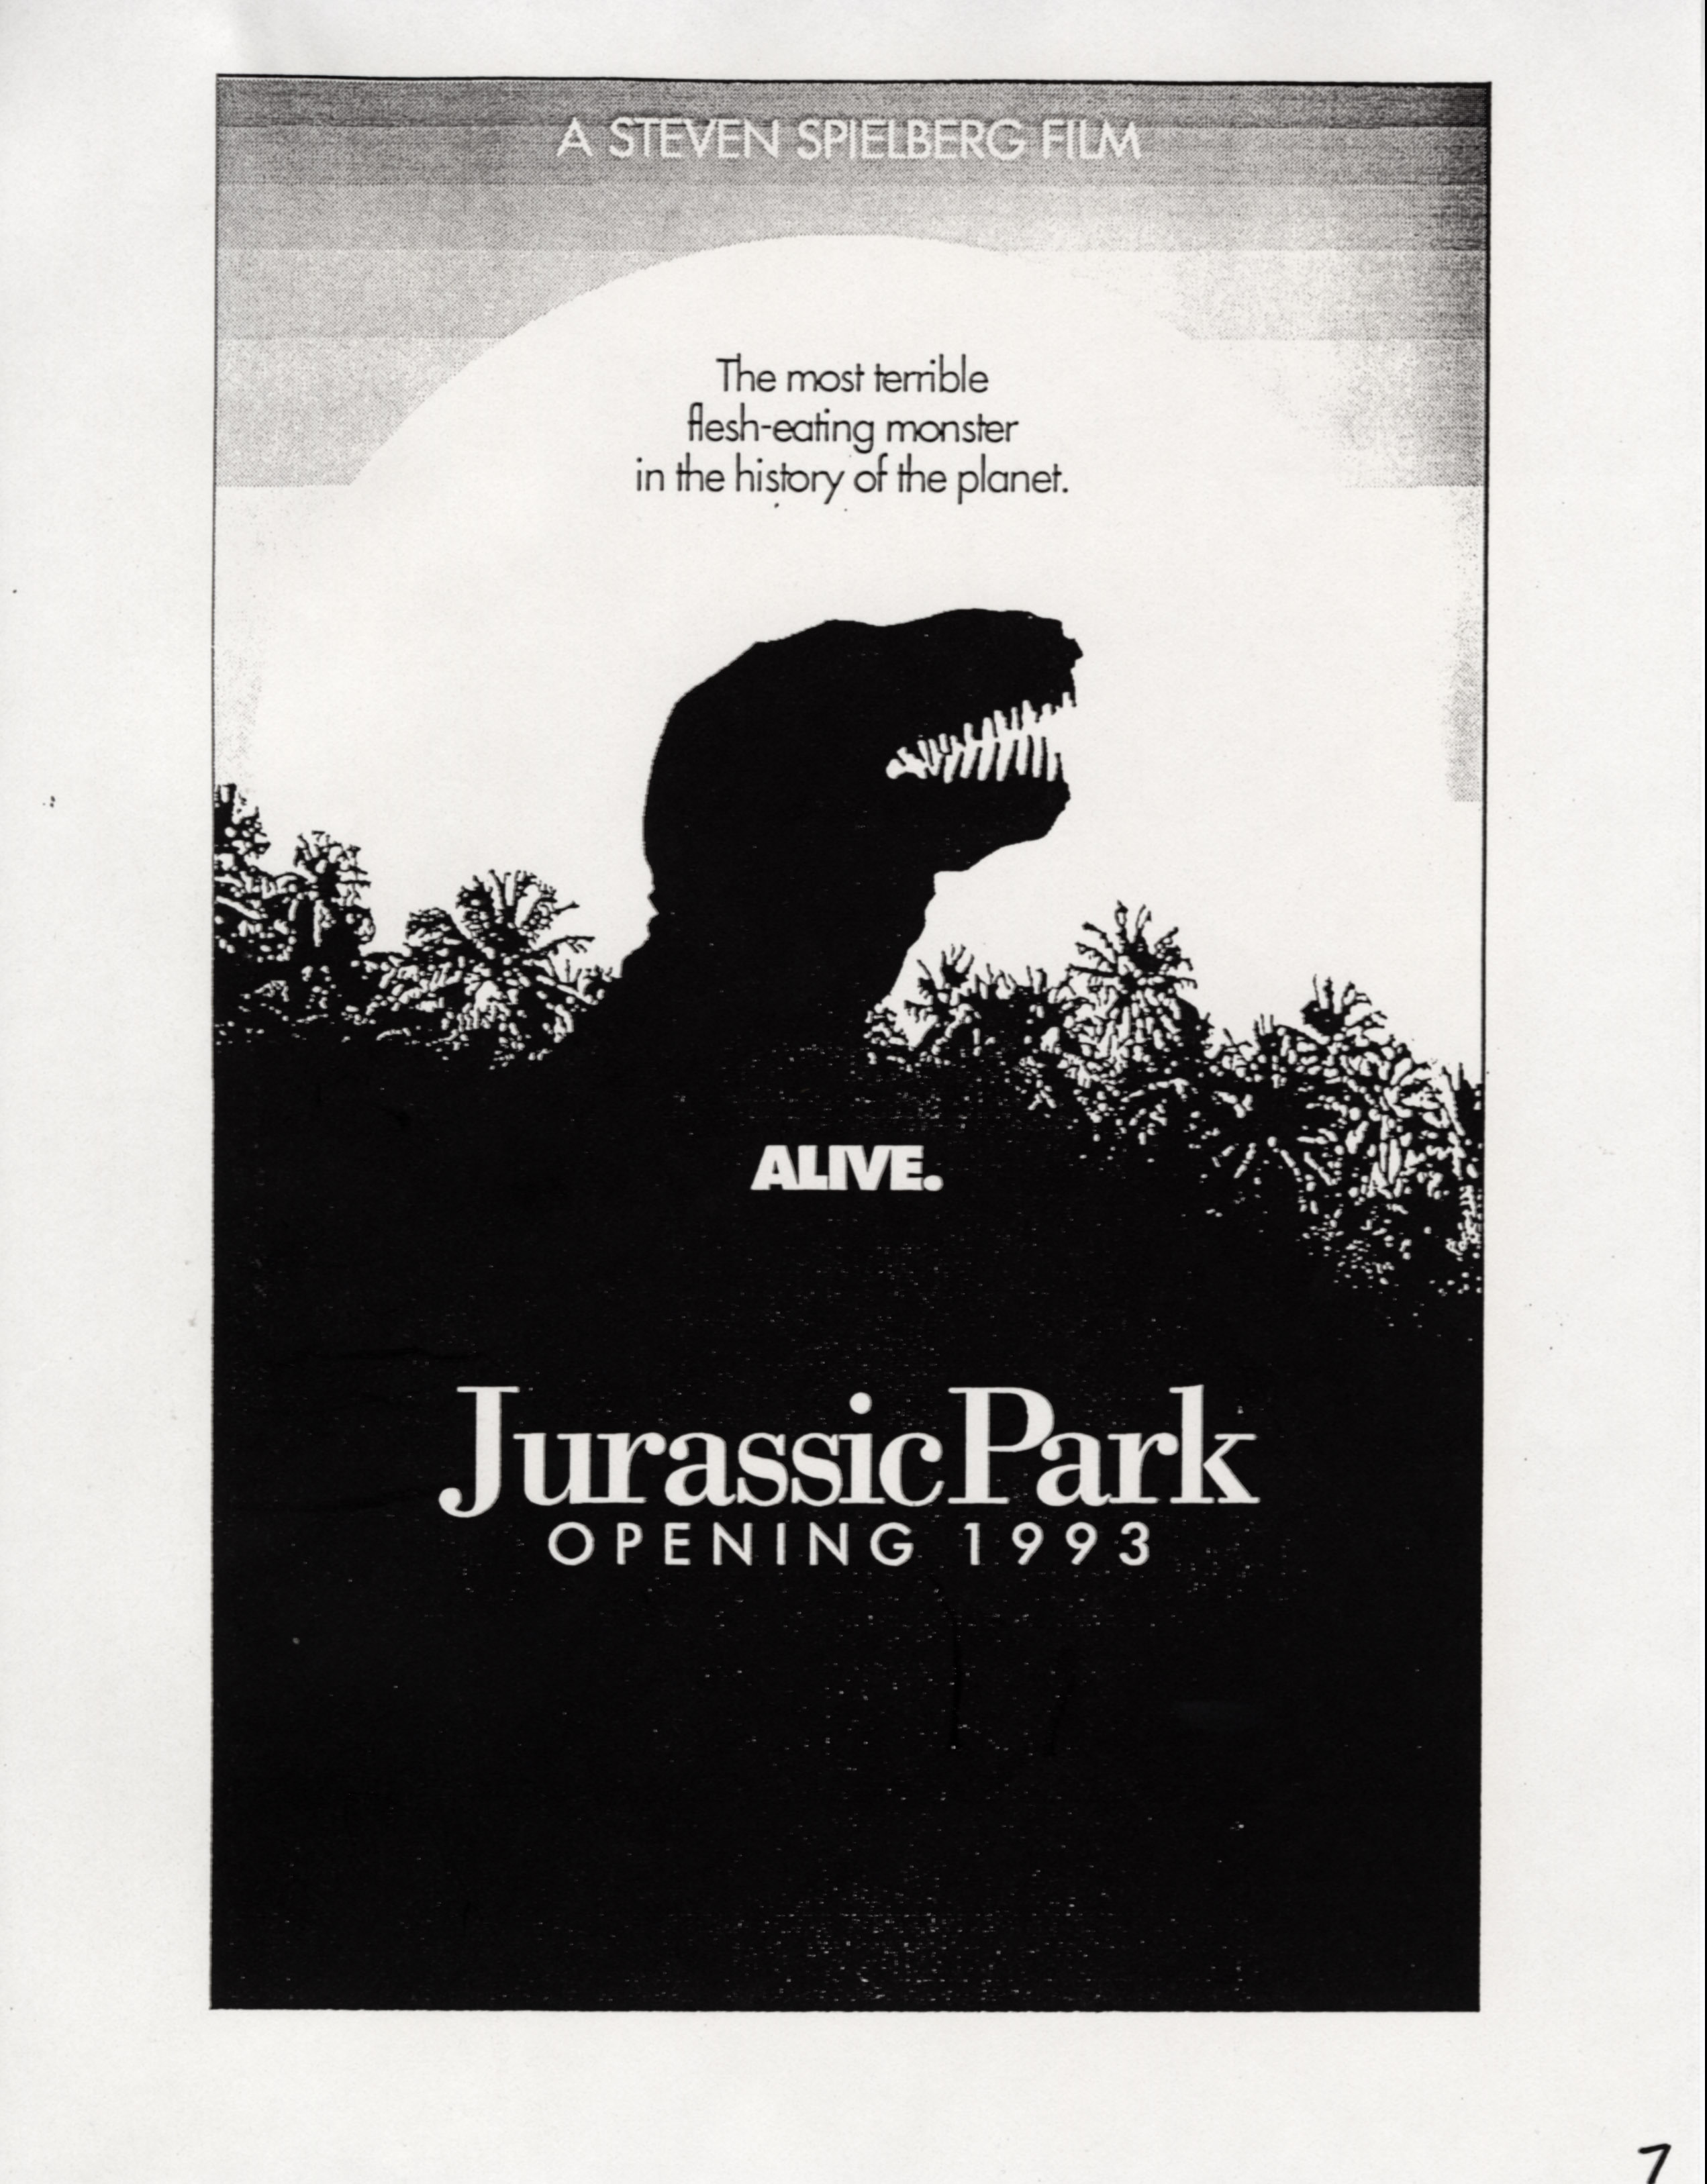 John Alvin   Jurassic Park poster   11 Exclusive: Over a Dozen Never Before Seen Jurassic Park Posters From Famous Artist John Alvin